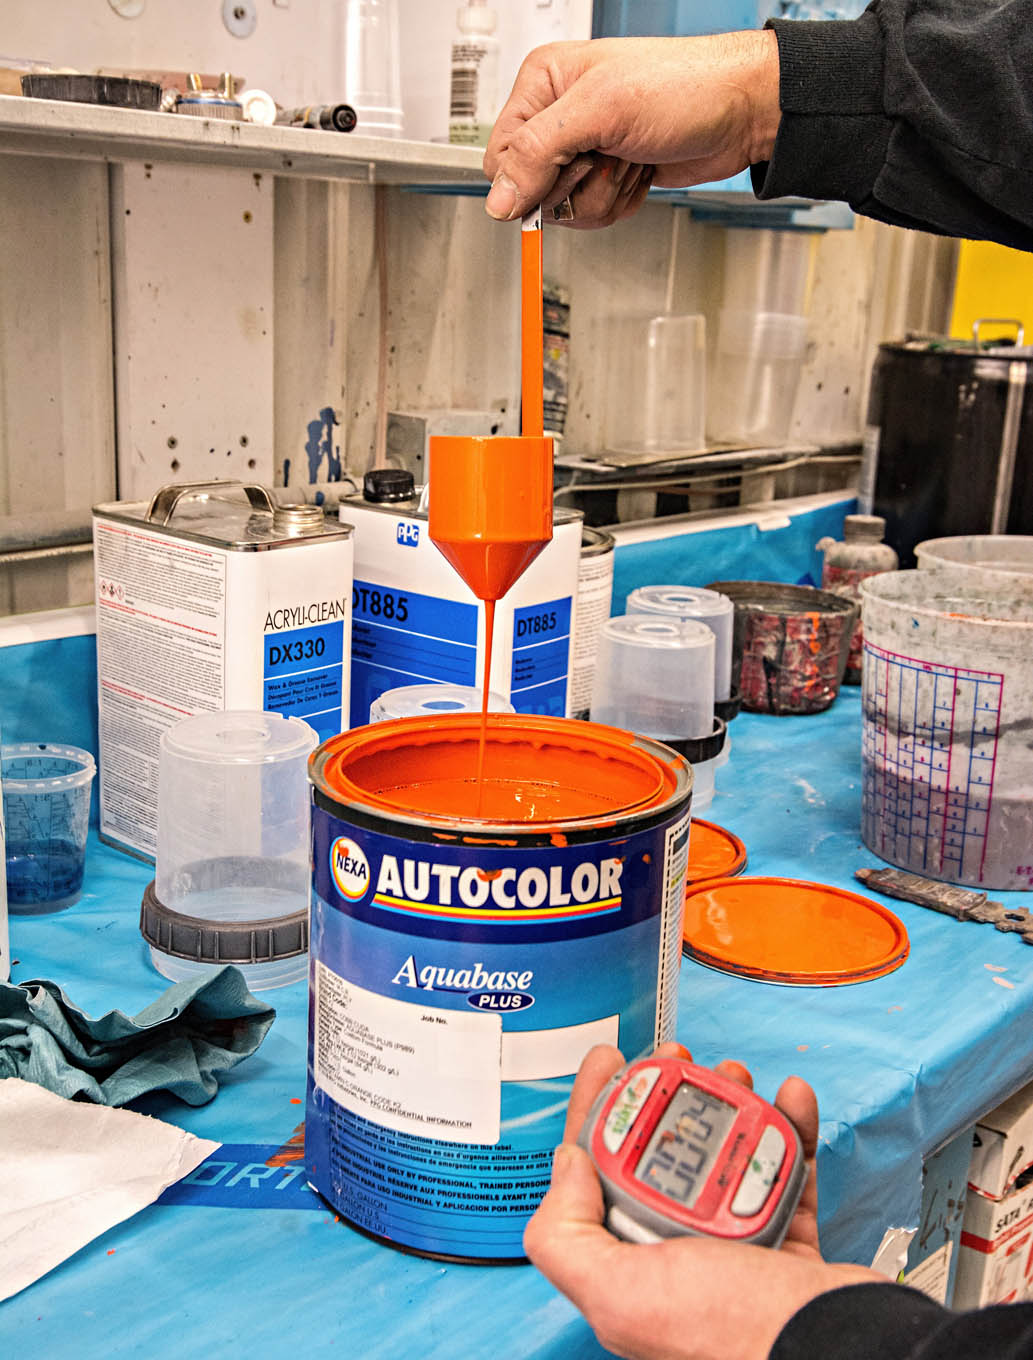 Waterborne paints are a complete system of products. While solvent-based paints are thinned about 1 to 1, waterborne is thinned more like 20 percent. Correct thinning has been achieved when the stream flowing from this special paint cup begins to break up at 22-23 seconds. The paint looks thicker than solvent types but yet requires a finer cup filter. Also in deference to Mr. Bond, waterborne paint needs to be stirred only and not shaken.